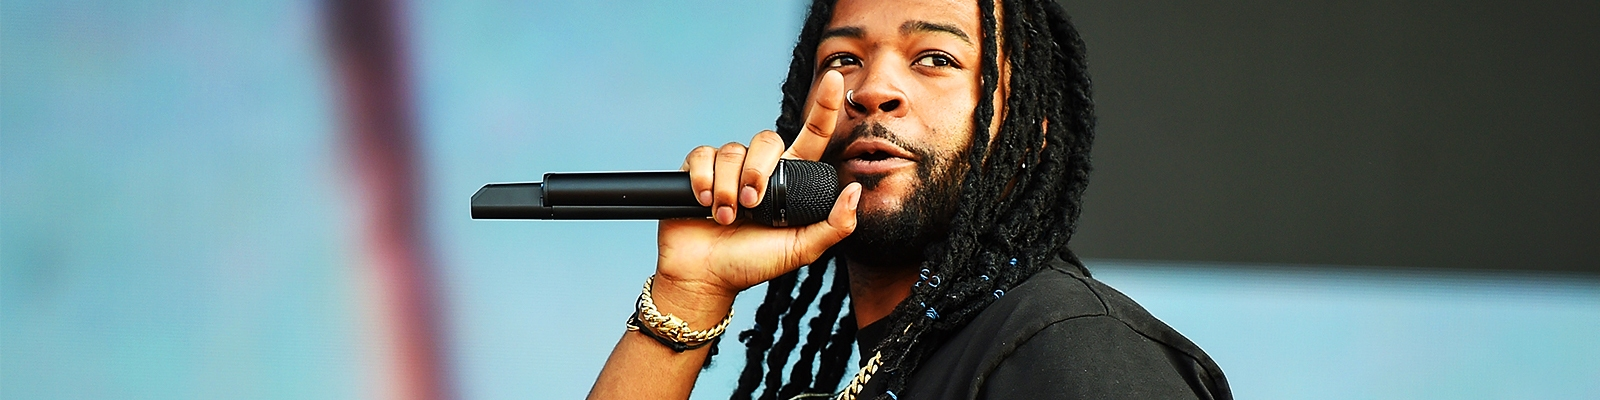 PartyNextDoor Updates The Formula That Made Him A Star On 'PartyMobile'